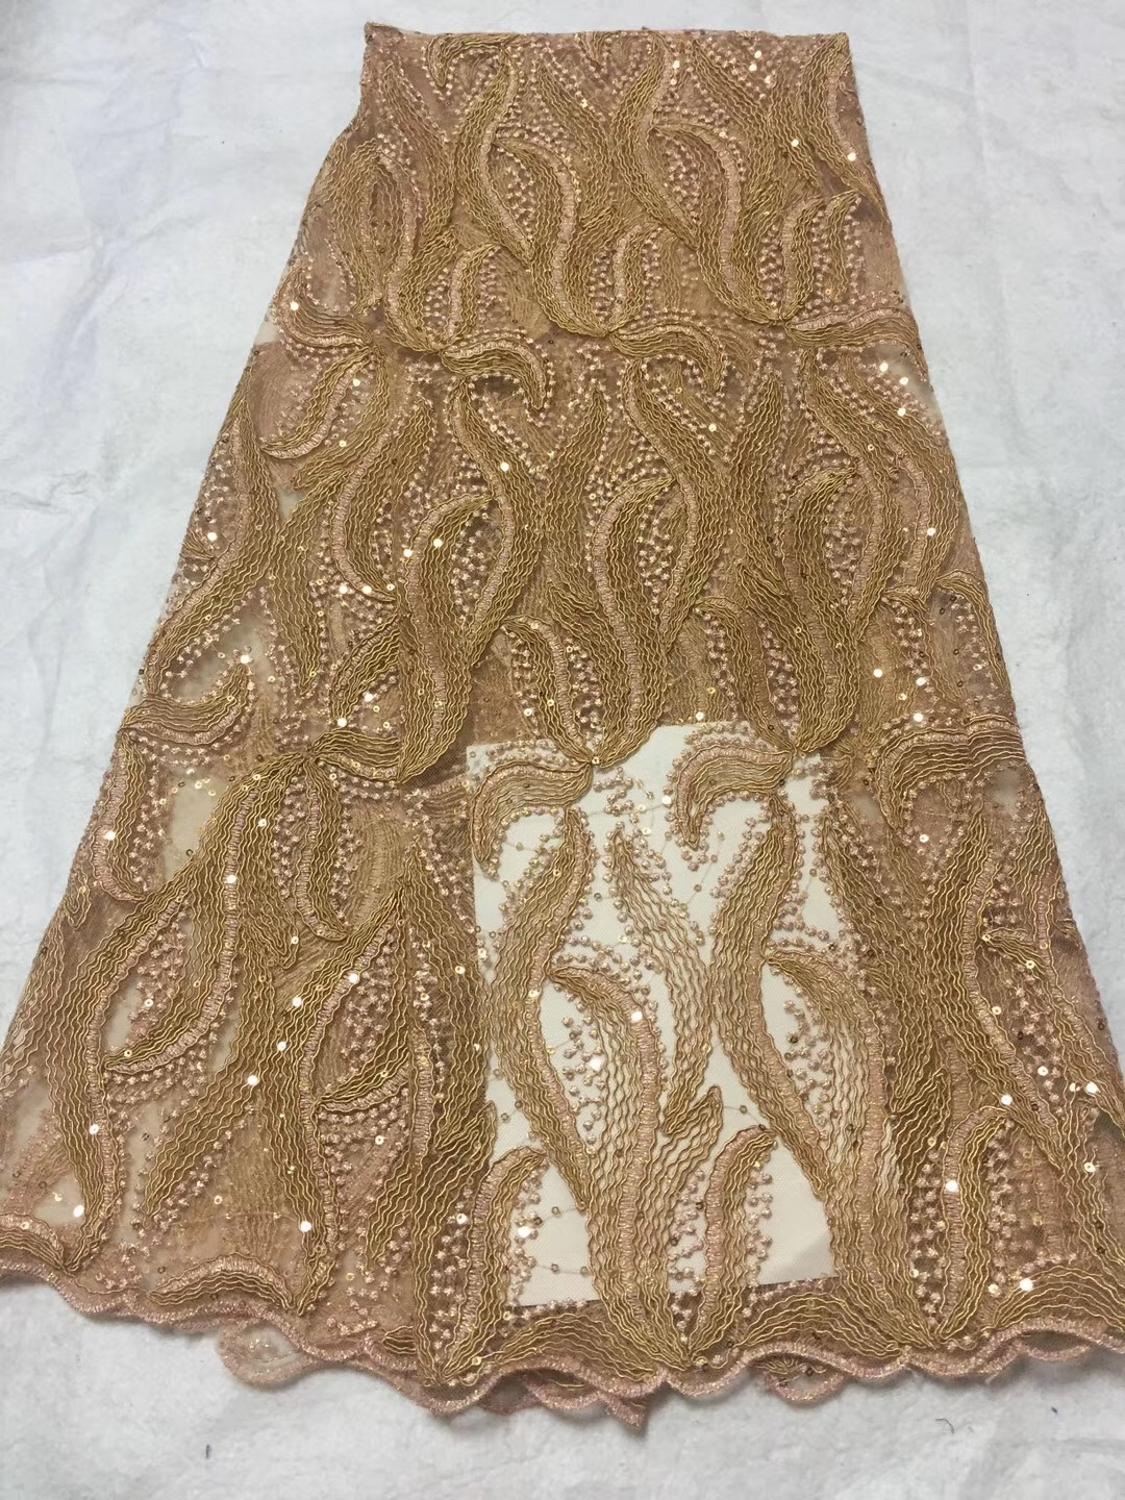 Gold African Wedding Lace Fabric High Quality French Lace Fabric With Sequin Embroidery African Lace Fabric For 5yards